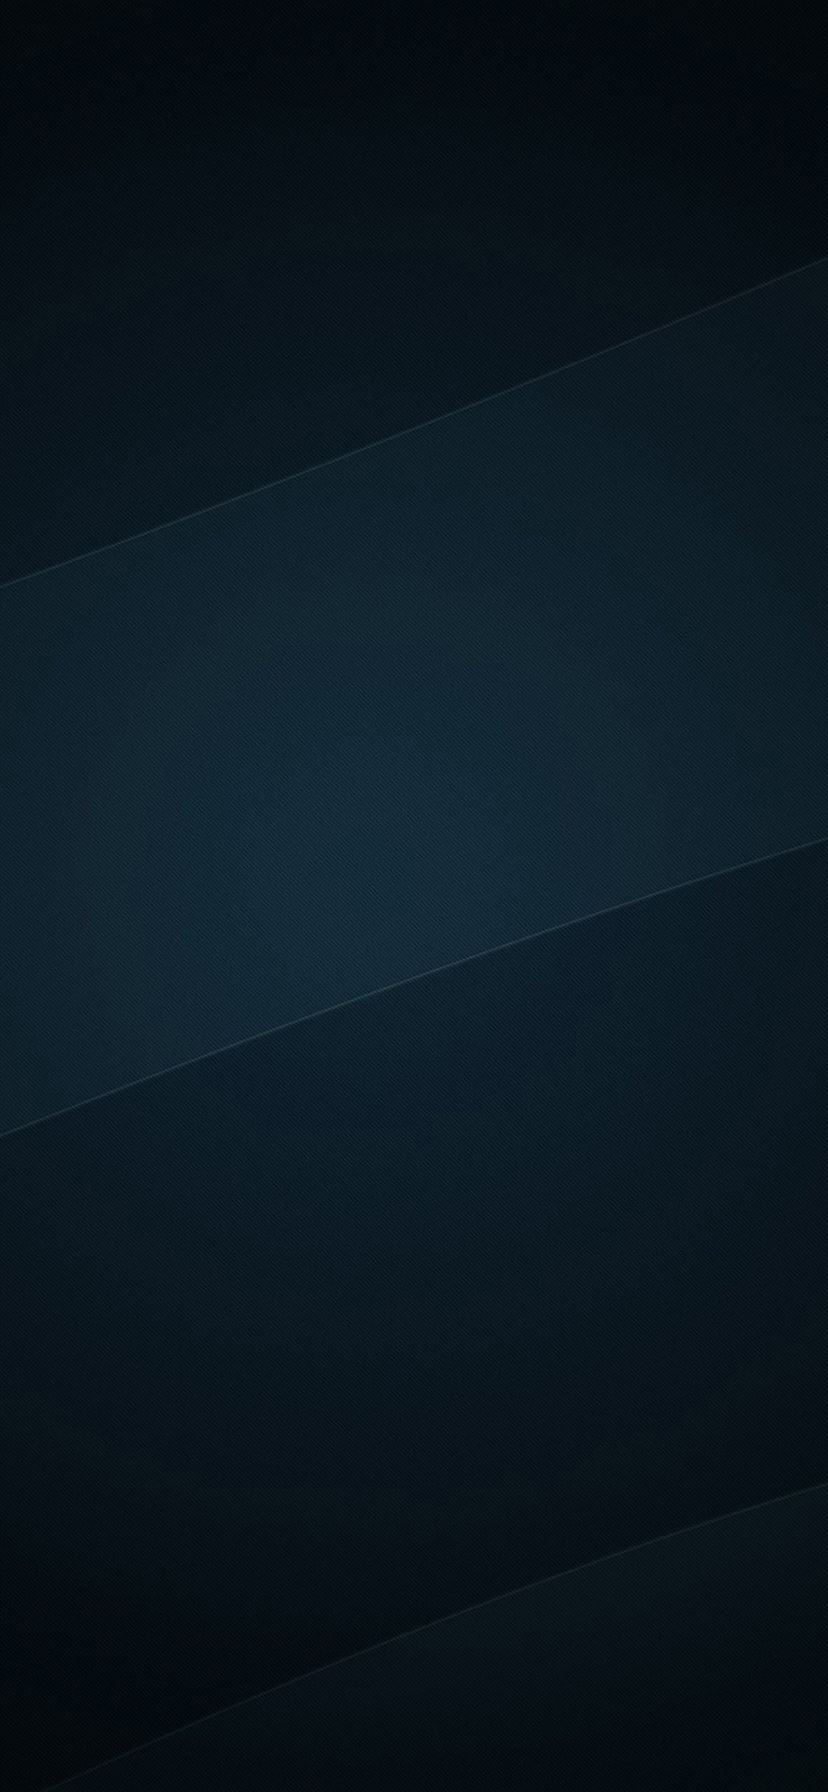 Dark Line Abstract Iphone 11 Wallpapers Free Download